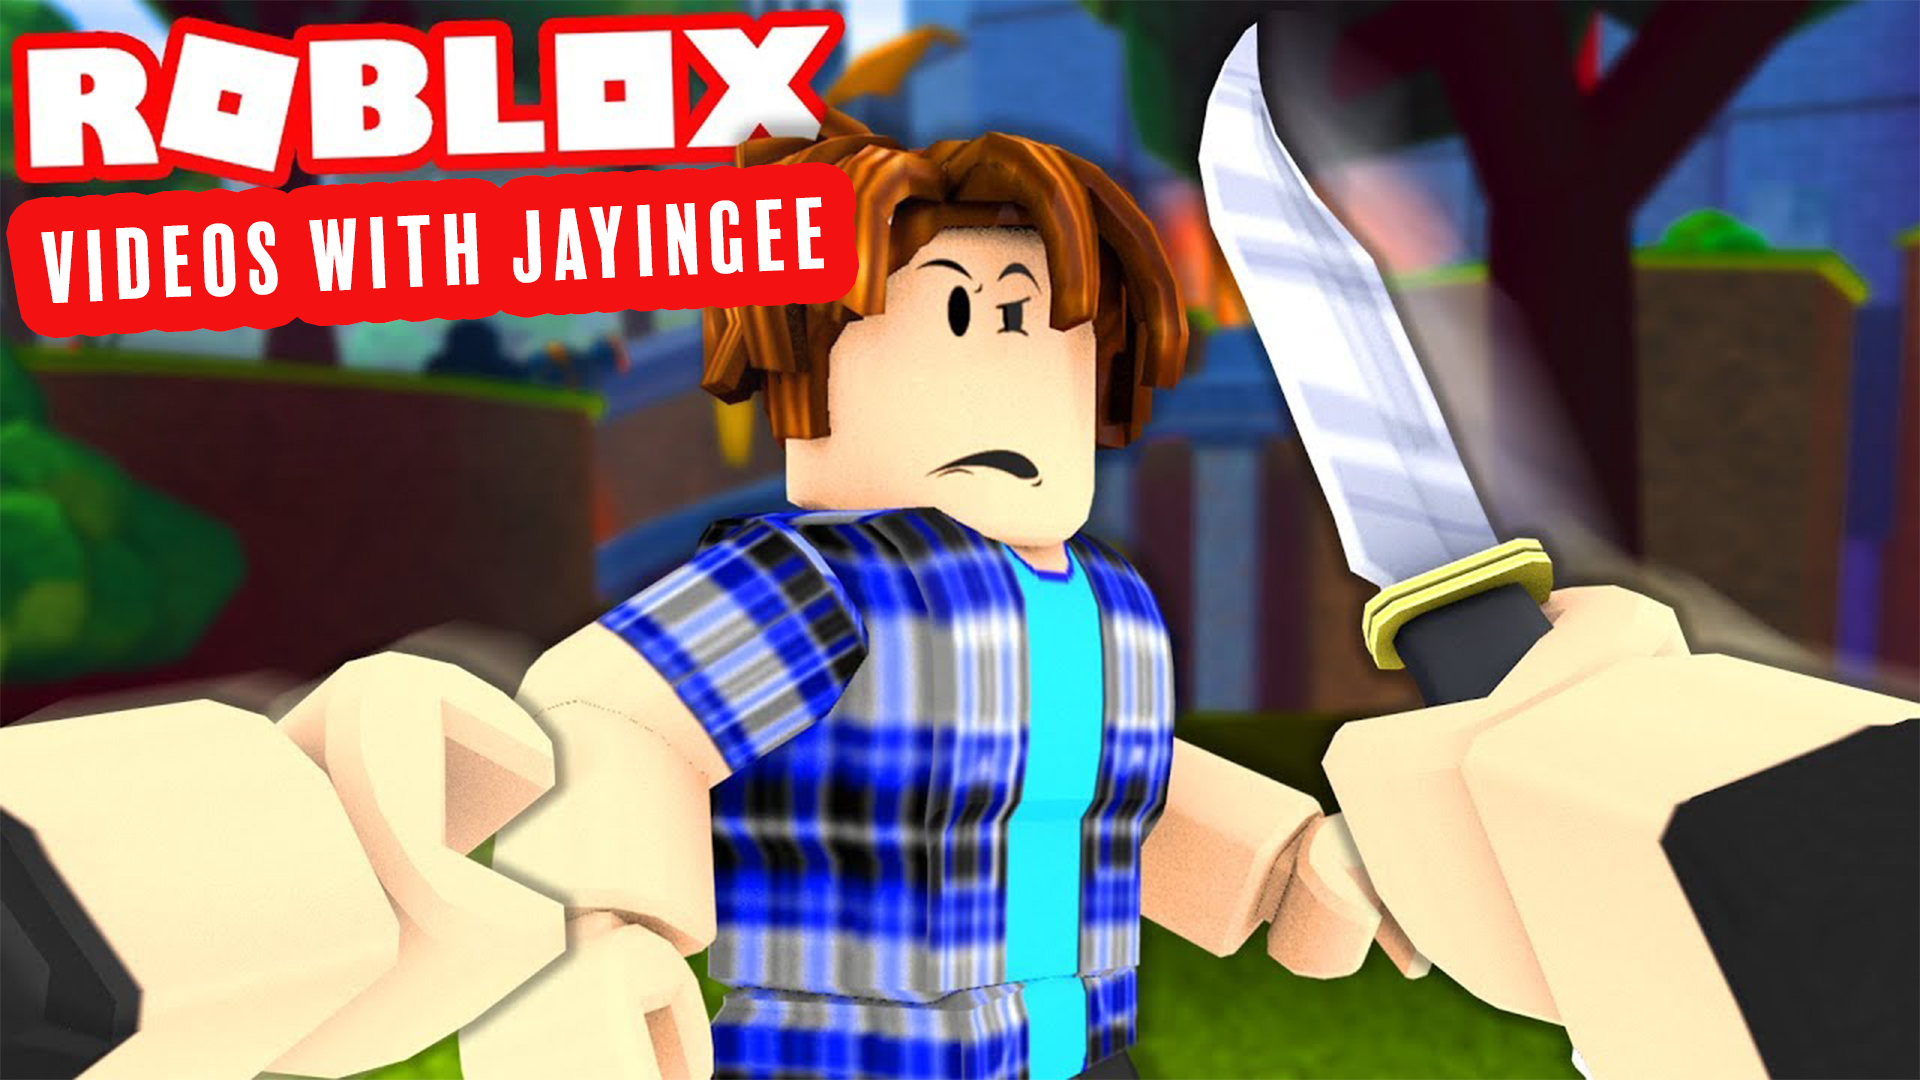 Videos Matching I Dare You To Watch This Video Roblox Watch Dark 5 Prime Video